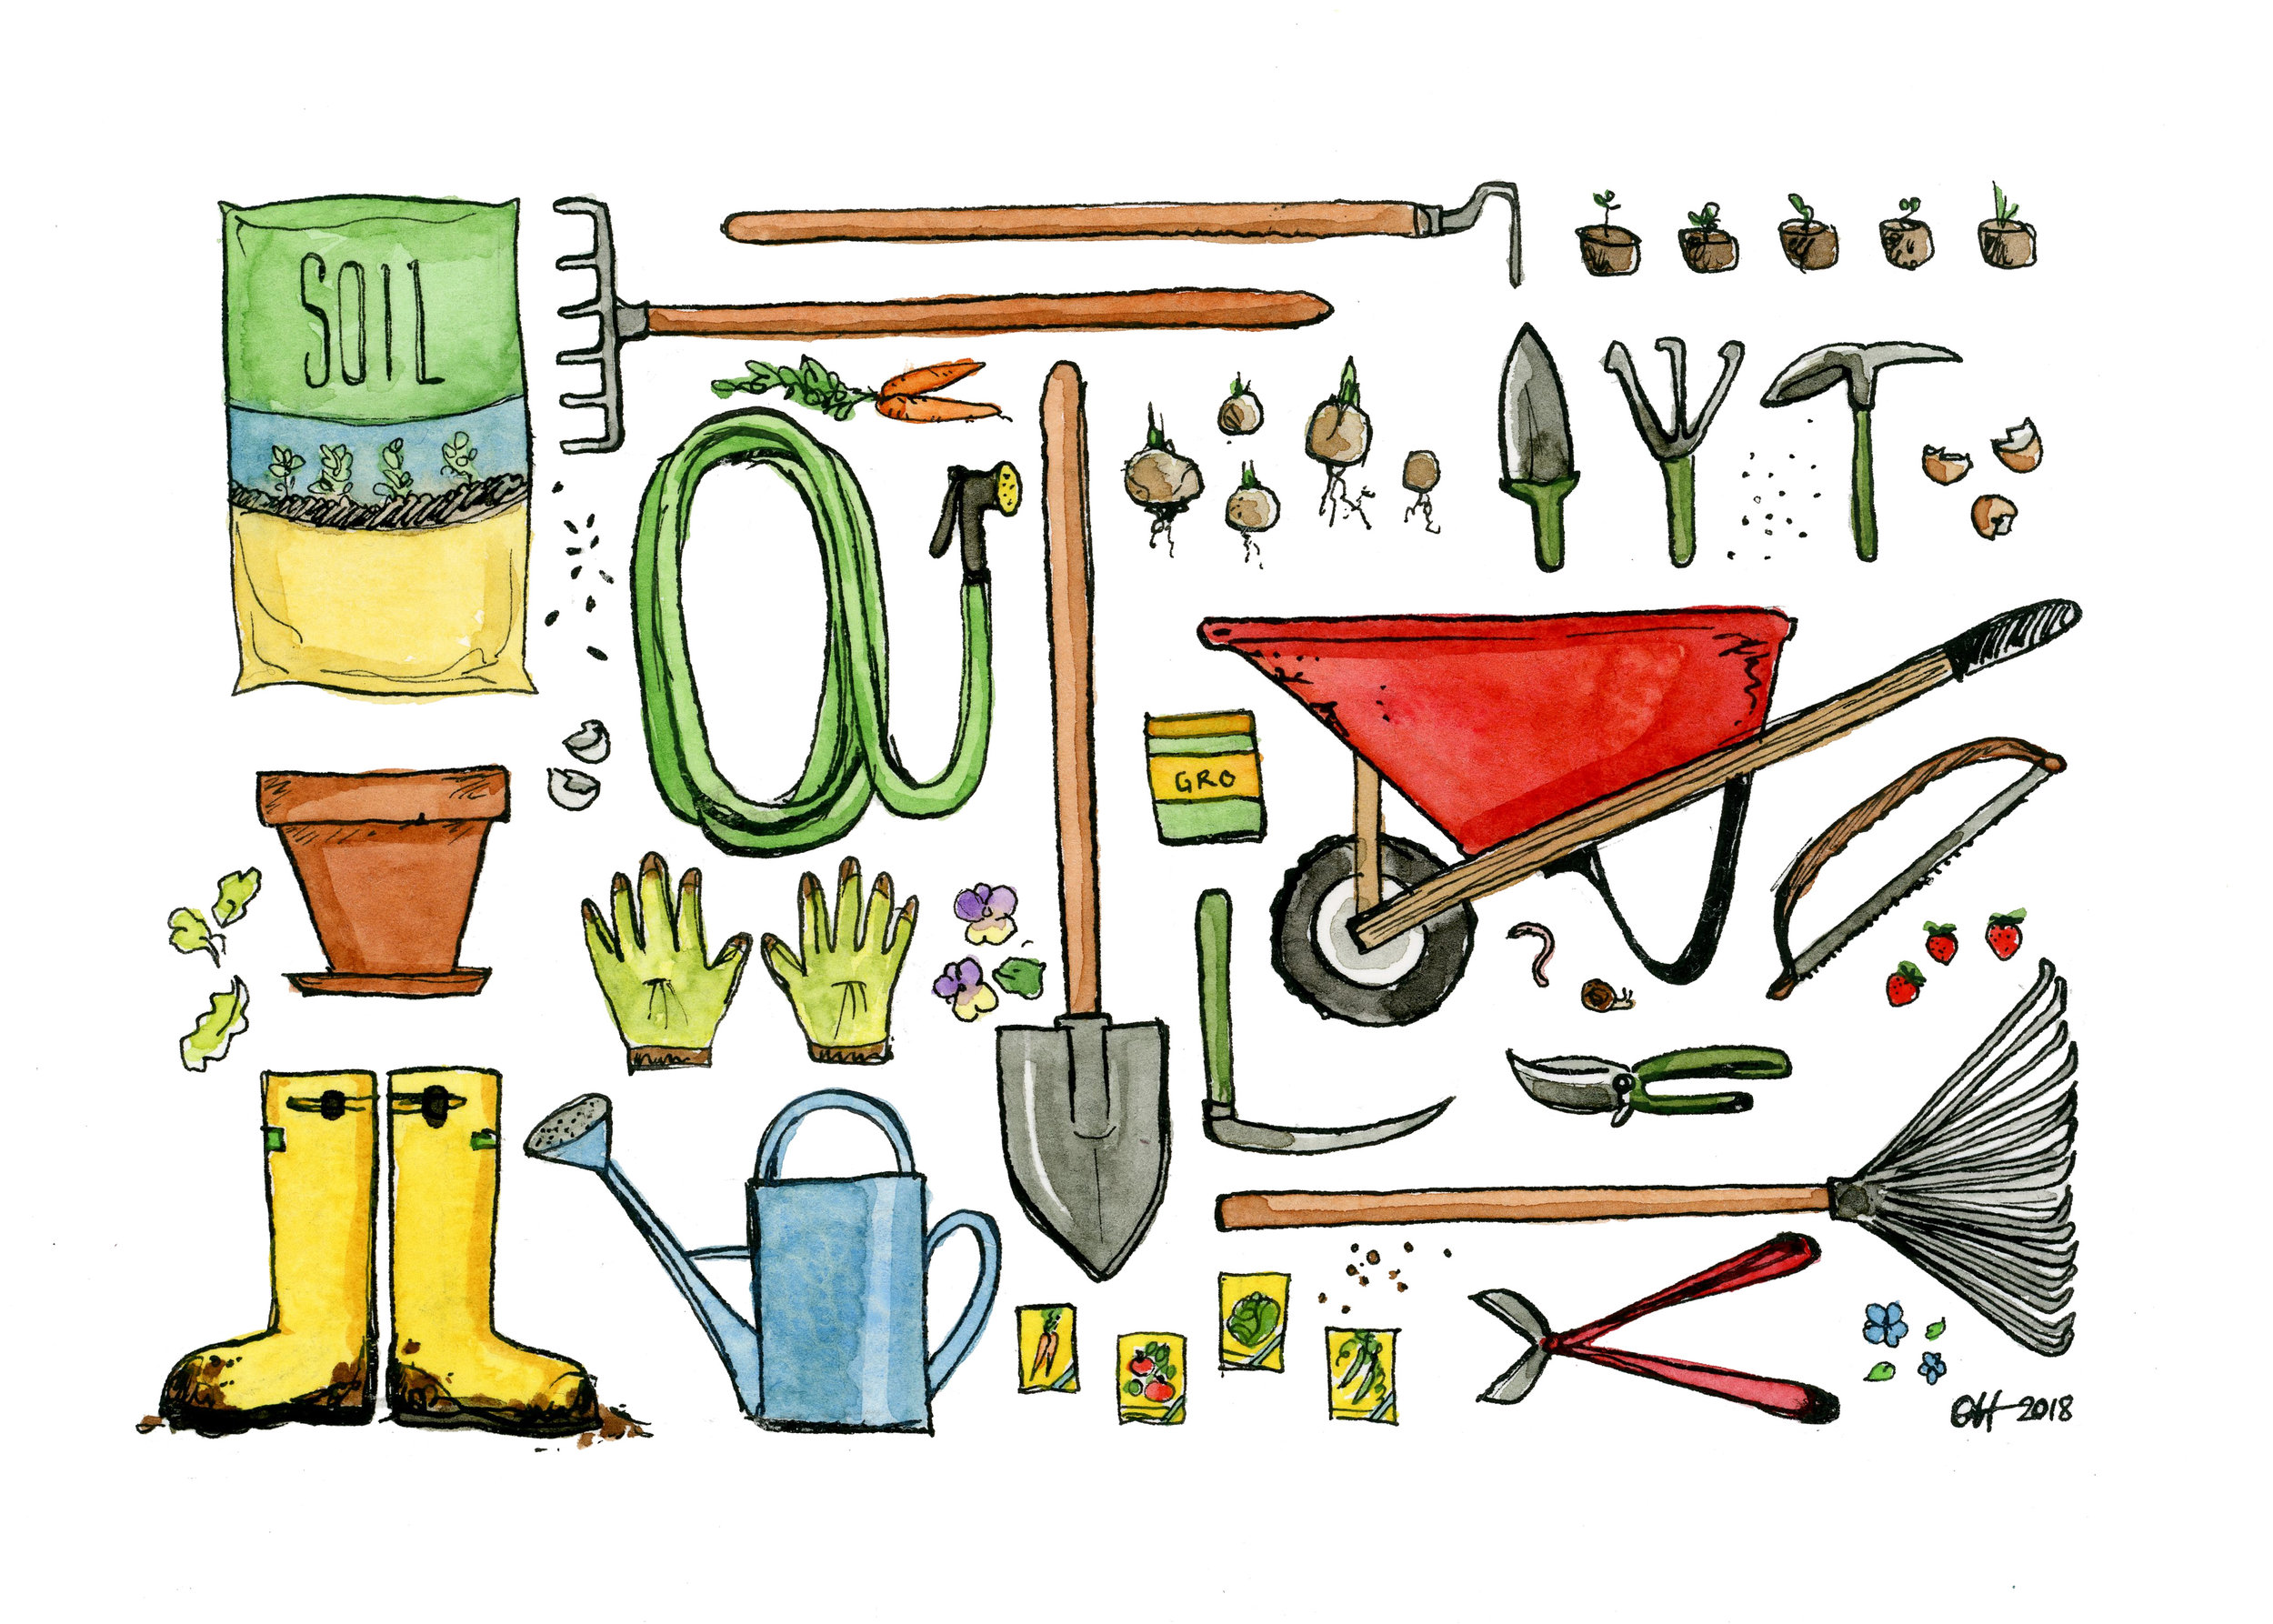 Gardening Essentials 2018 Watercolor and India ink